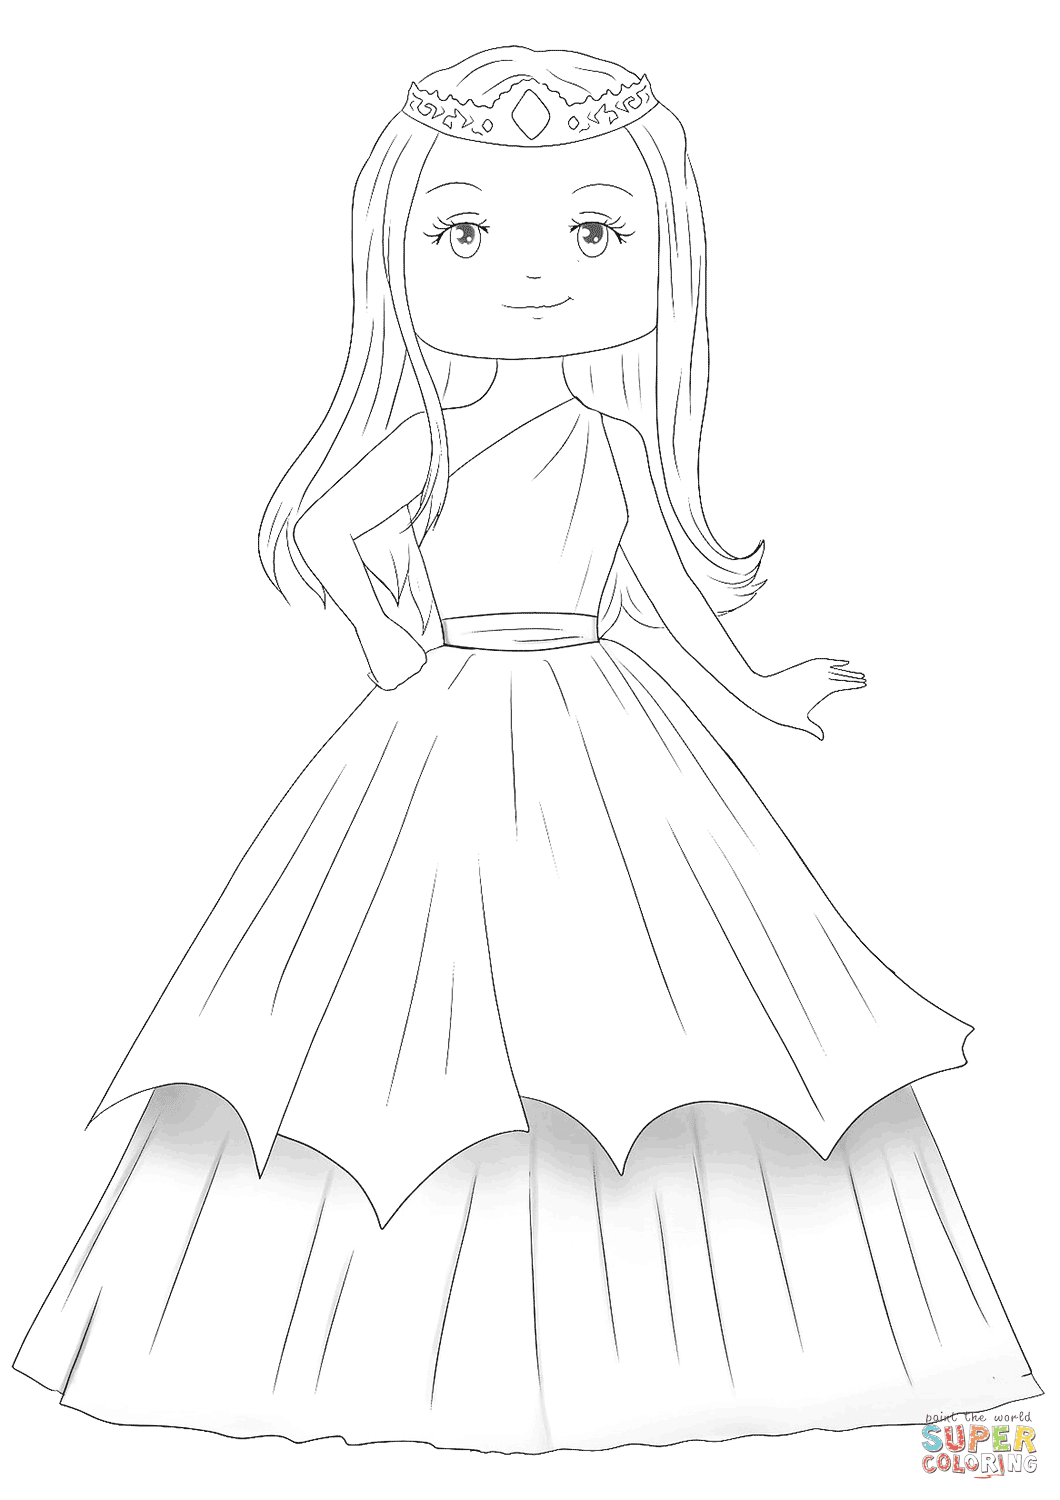 Cute Princess coloring page | Free Printable Coloring Pages